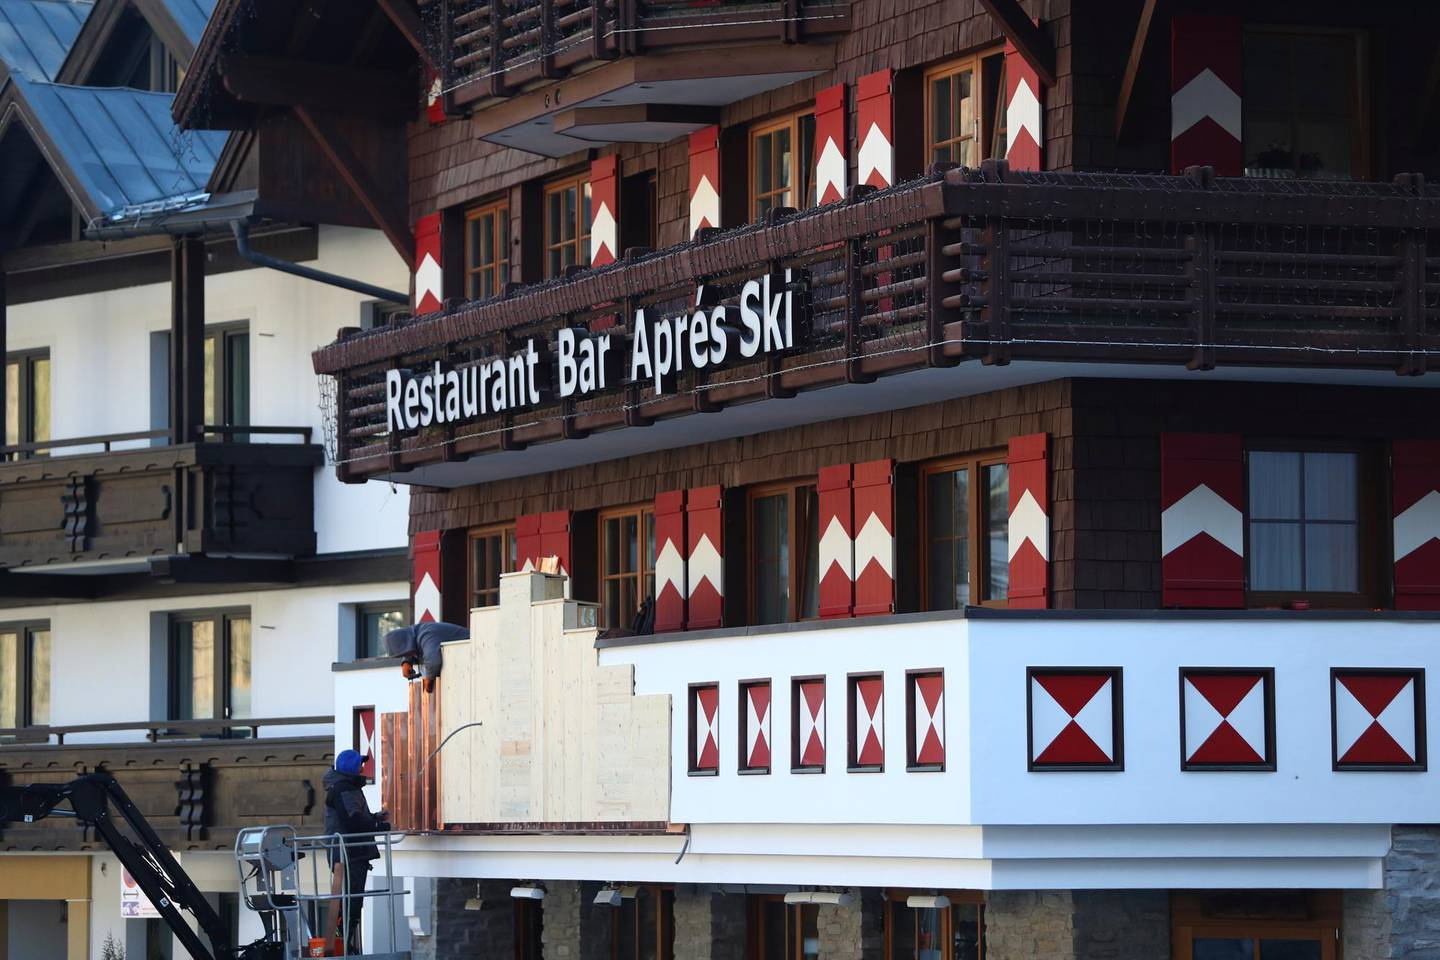 Worker prepare a balcony at a restaurant and bar in Ischgl, Austria, Thursday, Nov. 26, 2020. The Austrian government imposed a second lockdown to slow down the ongoing pandemic of the COVID-19 disease caused by the SARS-CoV-2 coronavirus from Nov. 17, 2020 until at least Dec. 6, 2020. (AP Photo/Matthias Schrader)